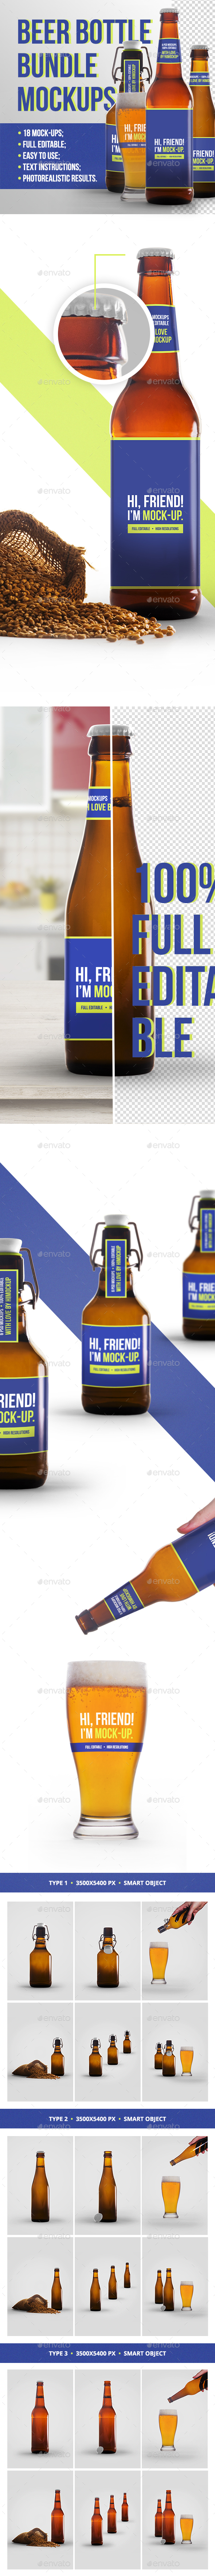 Beer Bottle Mockup Bundle - Food and Drink Packaging